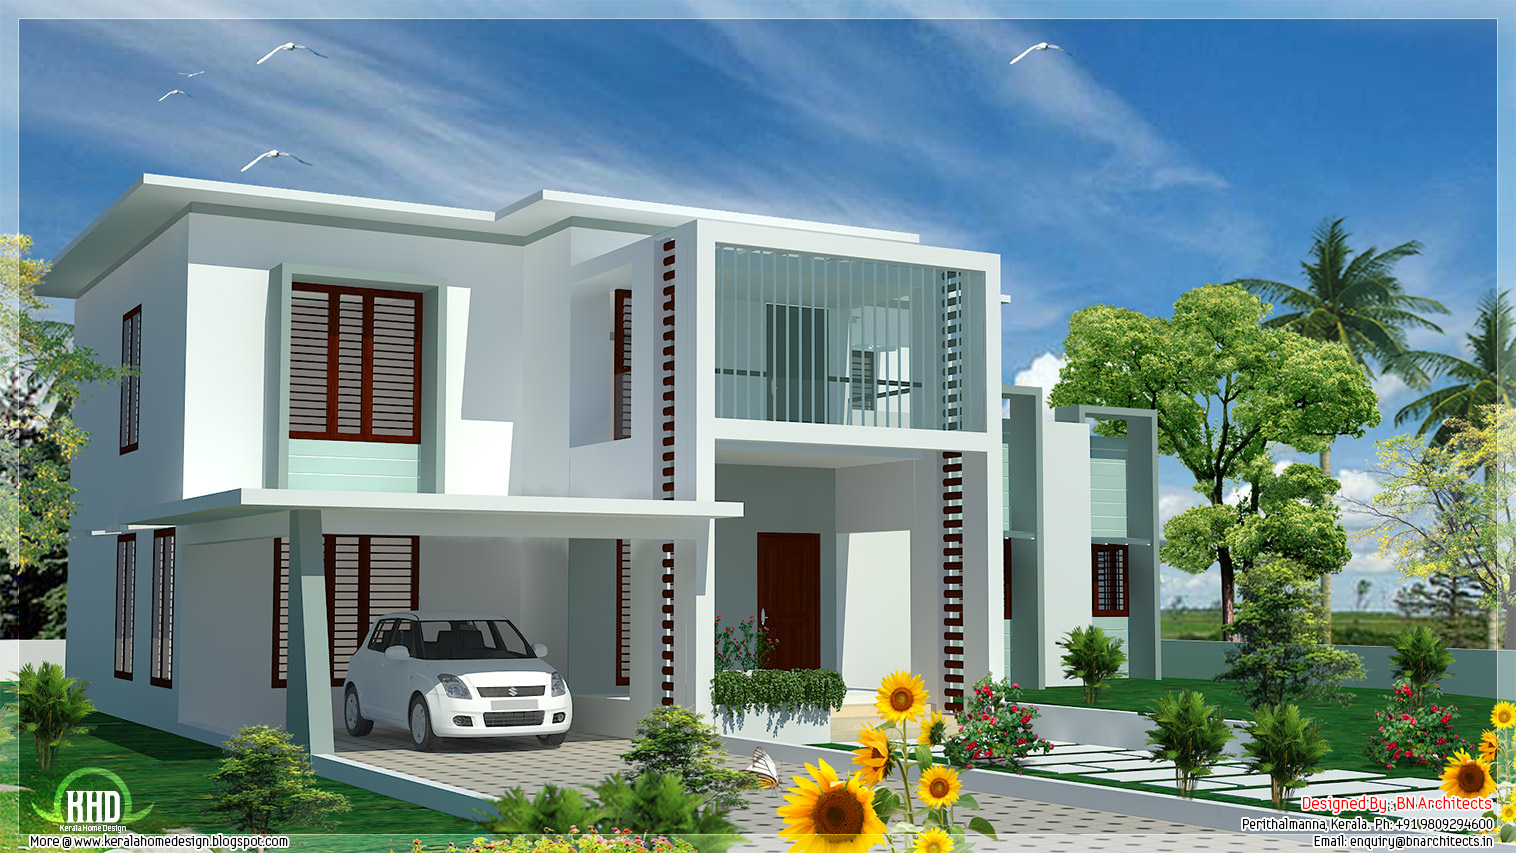 4 bedroom modern flat roof house kerala home design and Home design